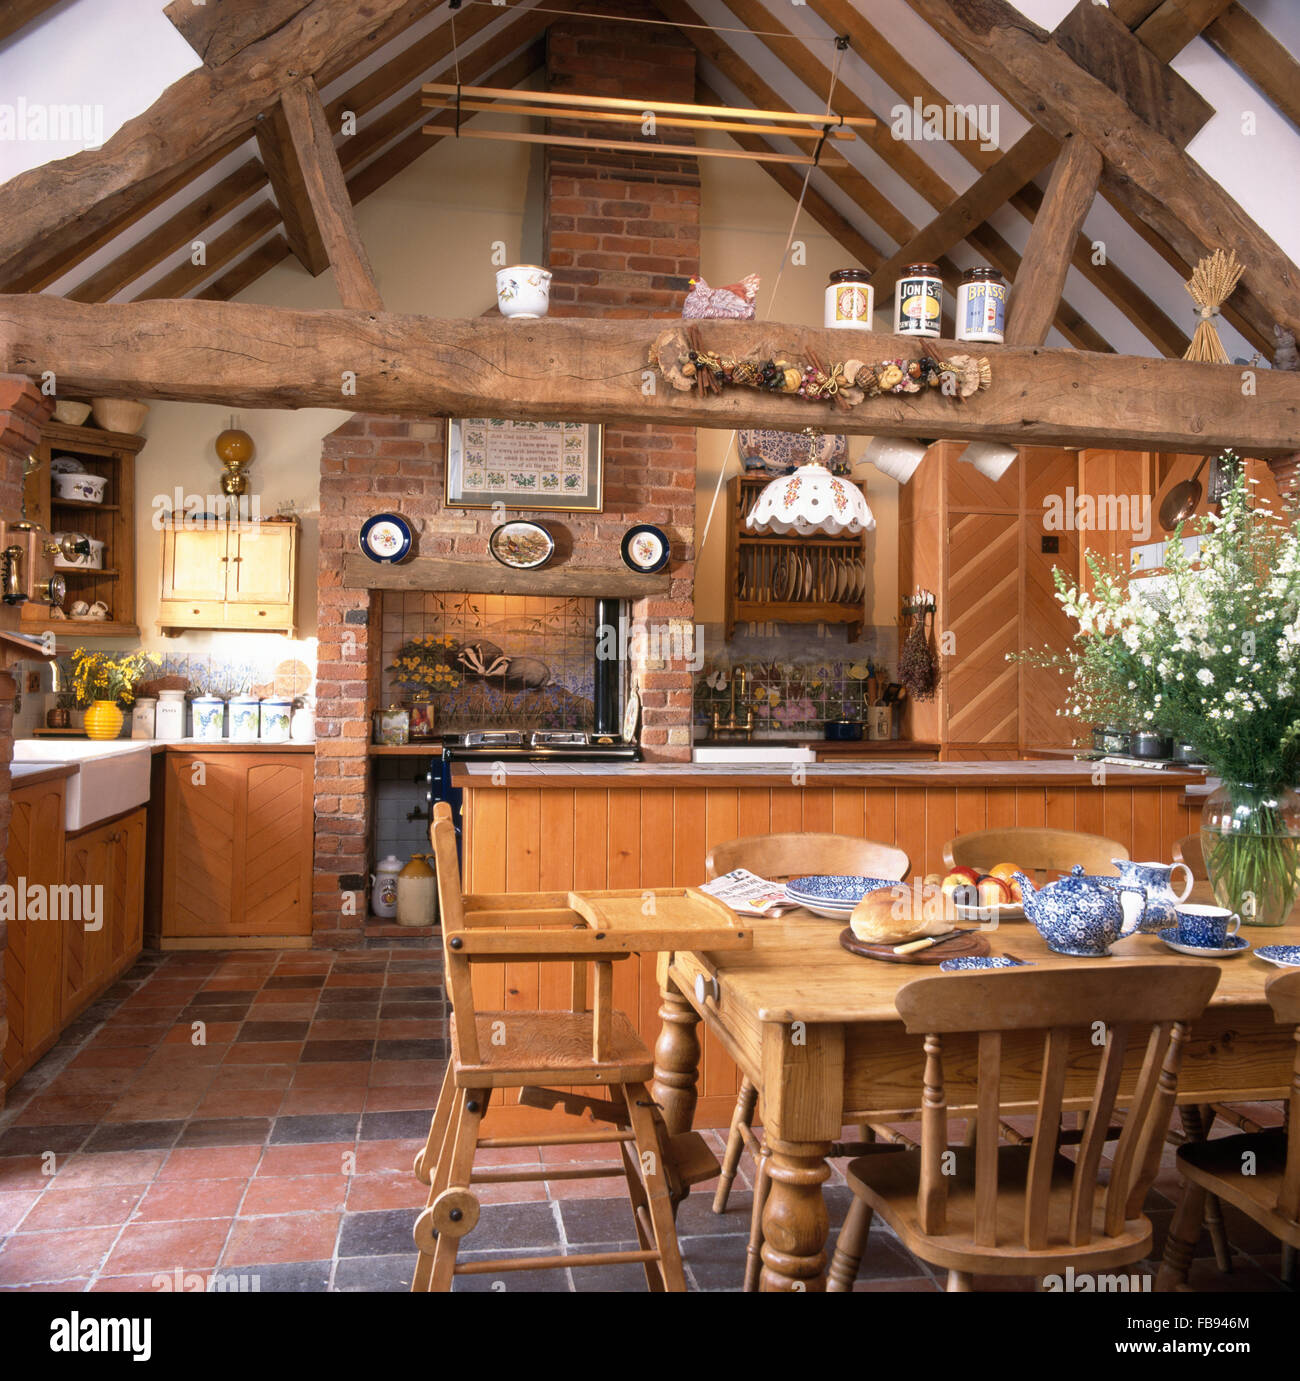 Stock Photo   Wooden Chairs And Childu0027s High Chair At Pine Table In Barn  Conversion Kitchen With Rustic Wooden Beams Part 76